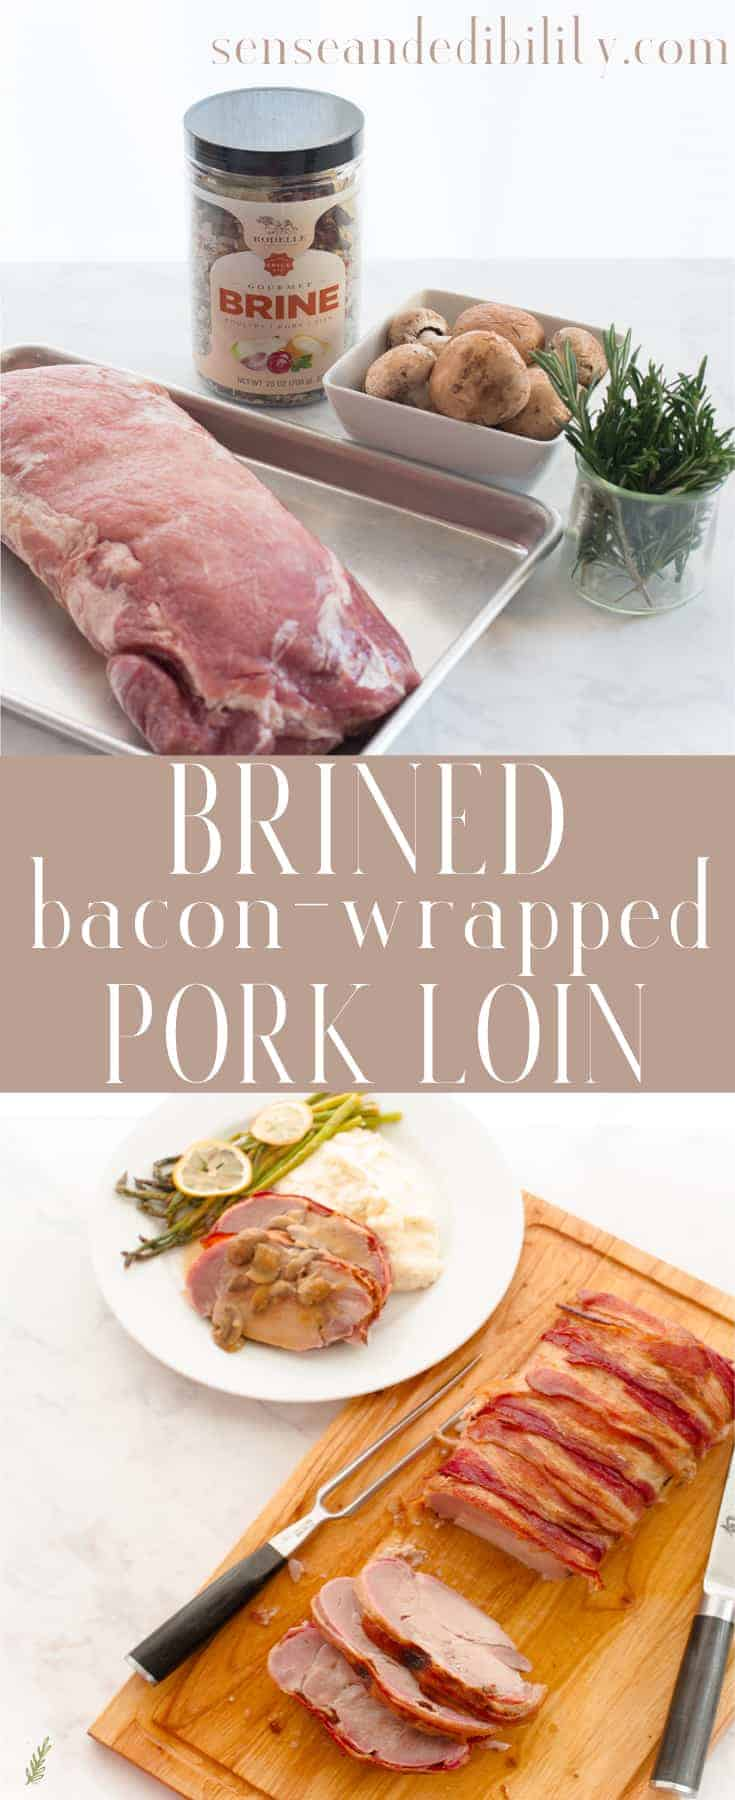 Sense & Edibility's Brined Bacon-Wrapped Pork Loin Pin